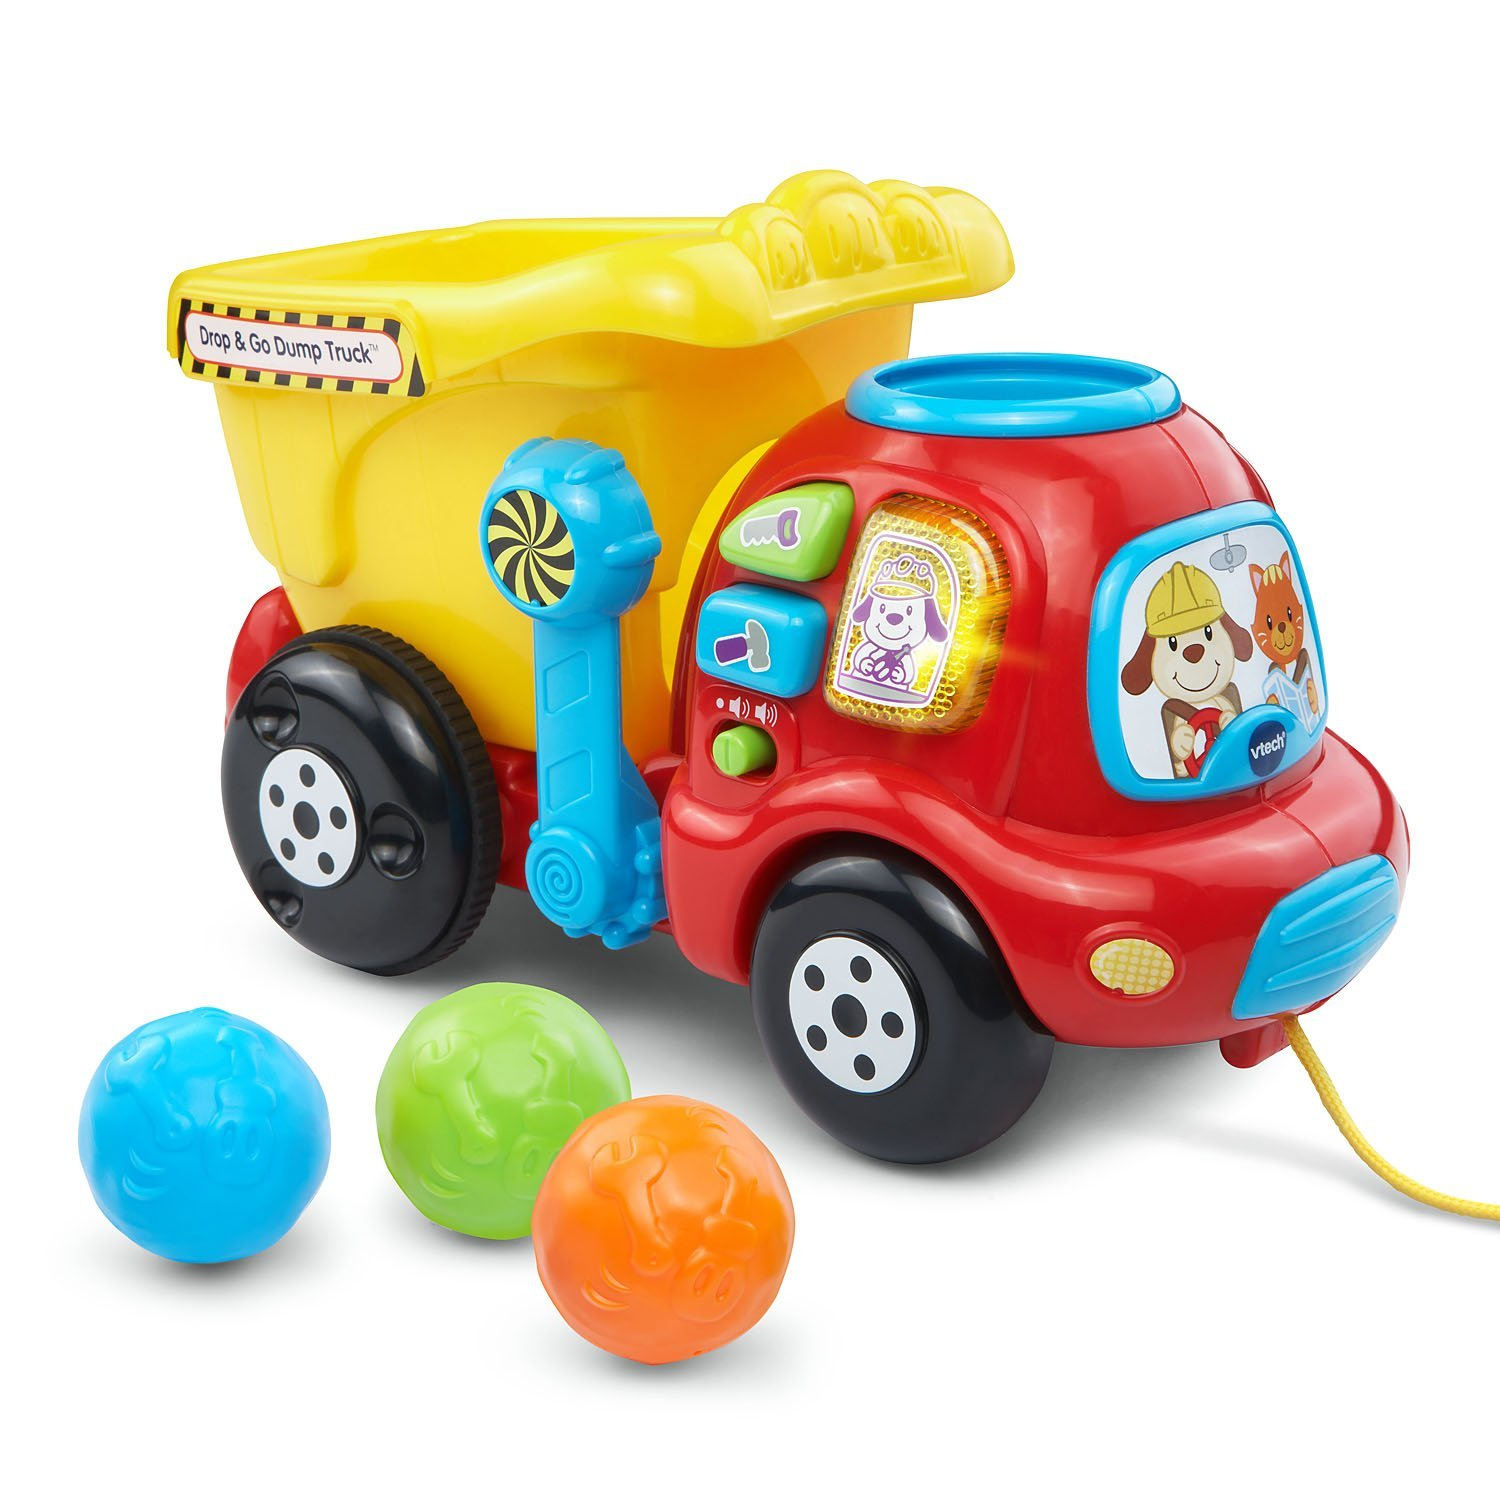 vtech-drop-and-go-dump-truck